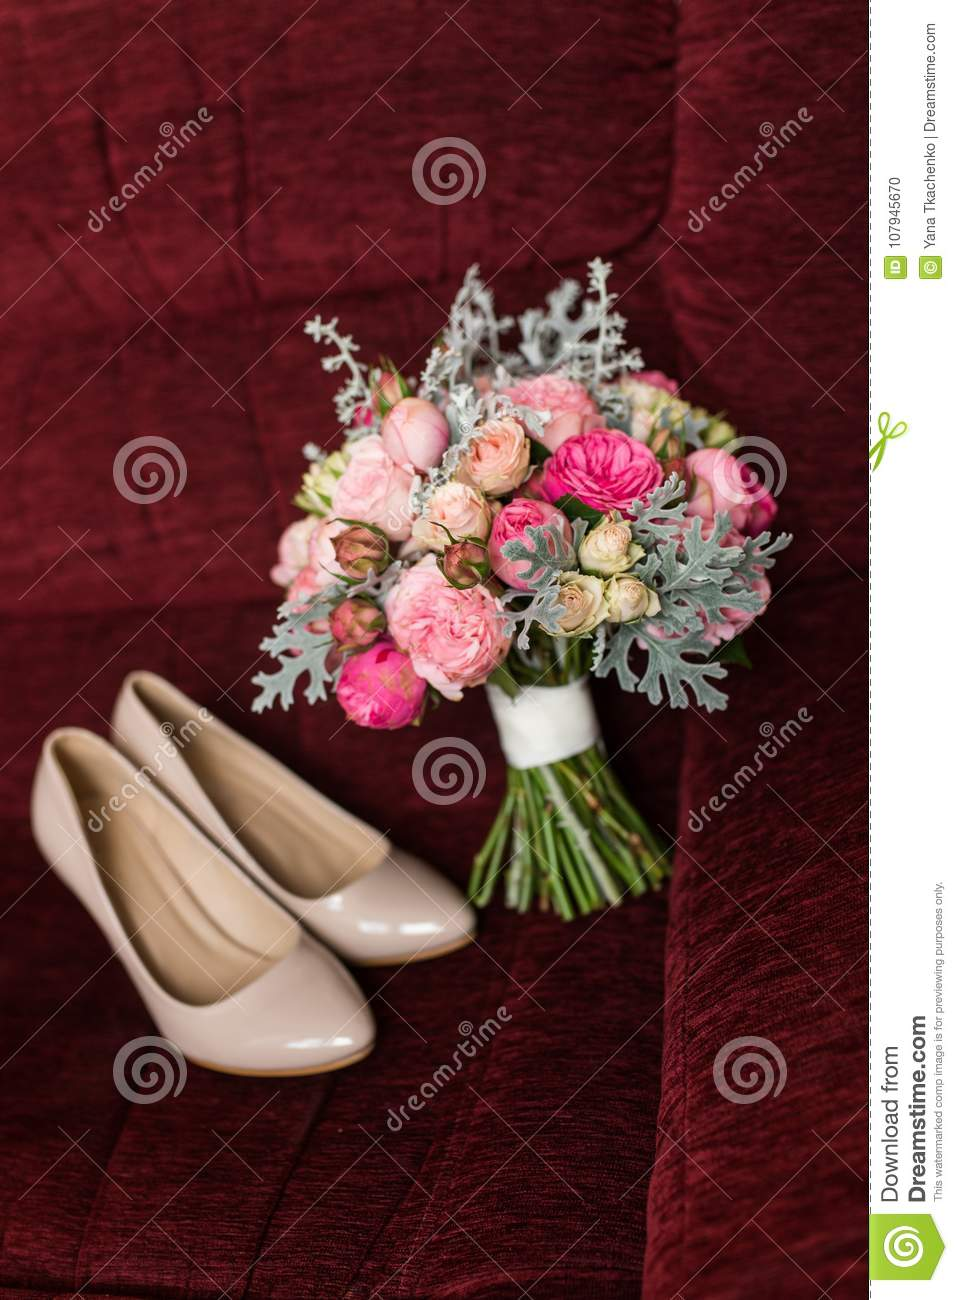 Wedding Bouquet With Purple And Pink Roses Lying On A Red Armchair